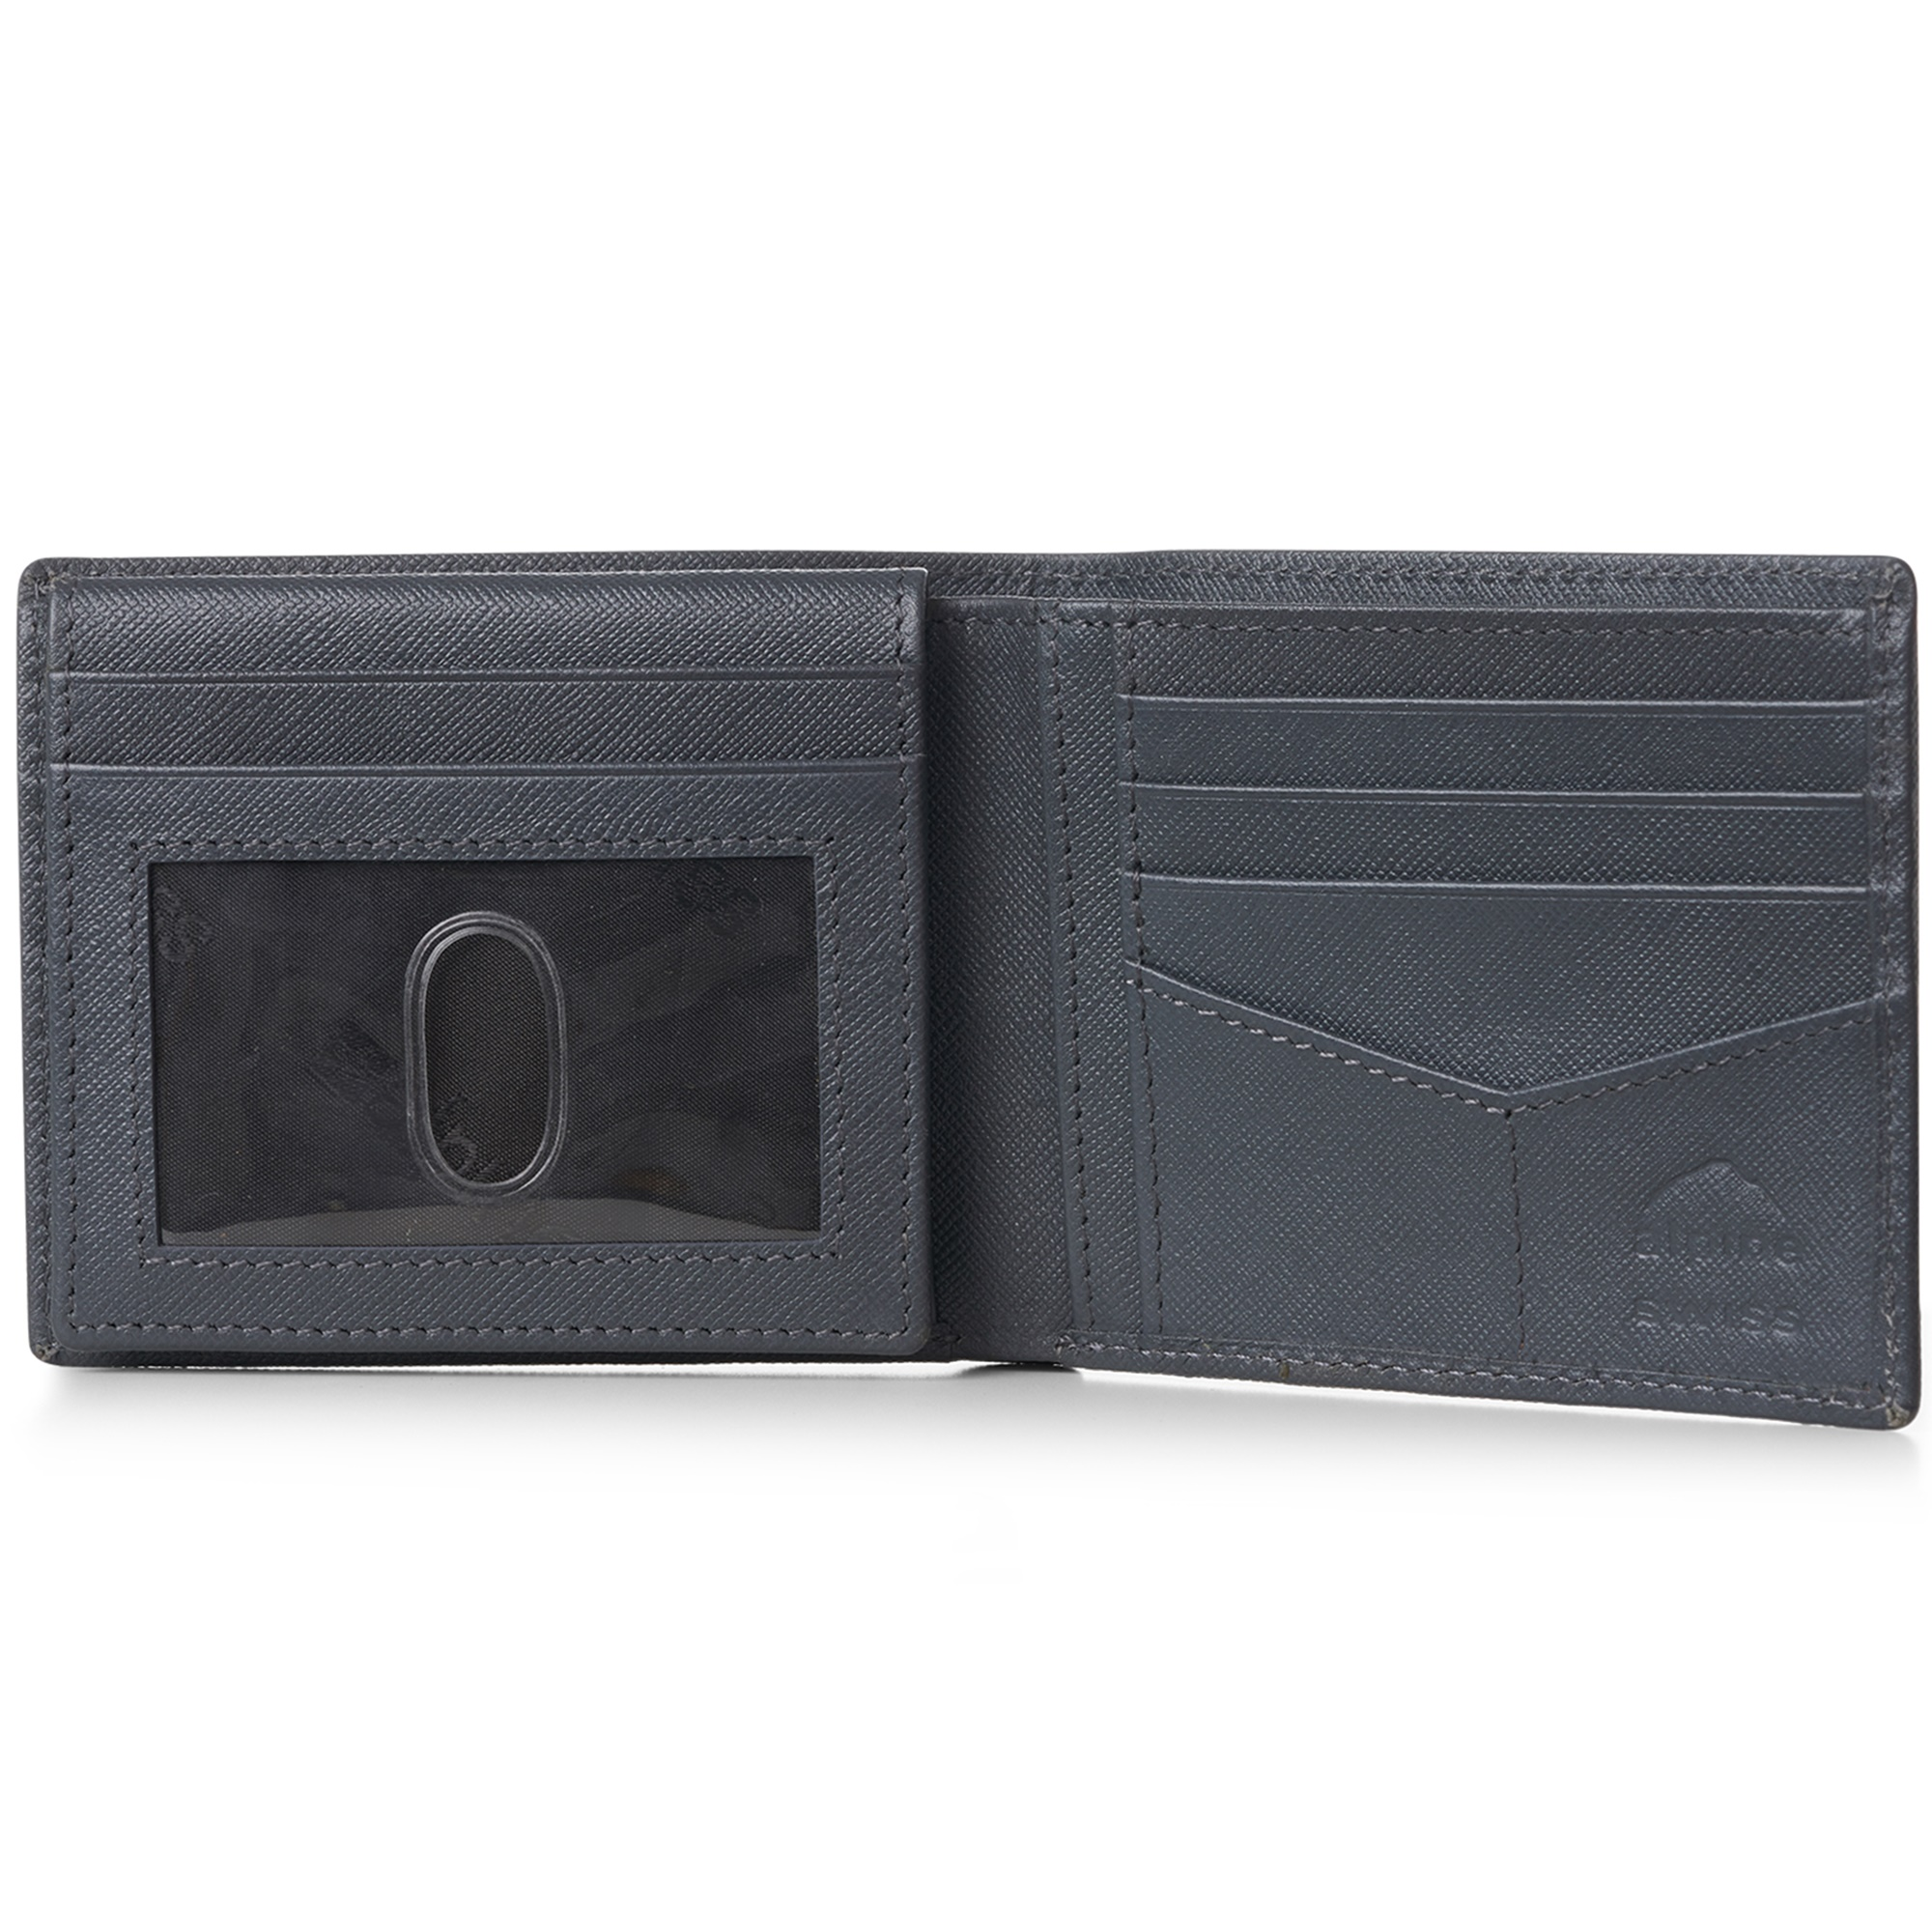 miniature 56 - Alpine-Swiss-RFID-Mens-Wallet-Deluxe-Capacity-Passcase-Bifold-Two-Bill-Sections